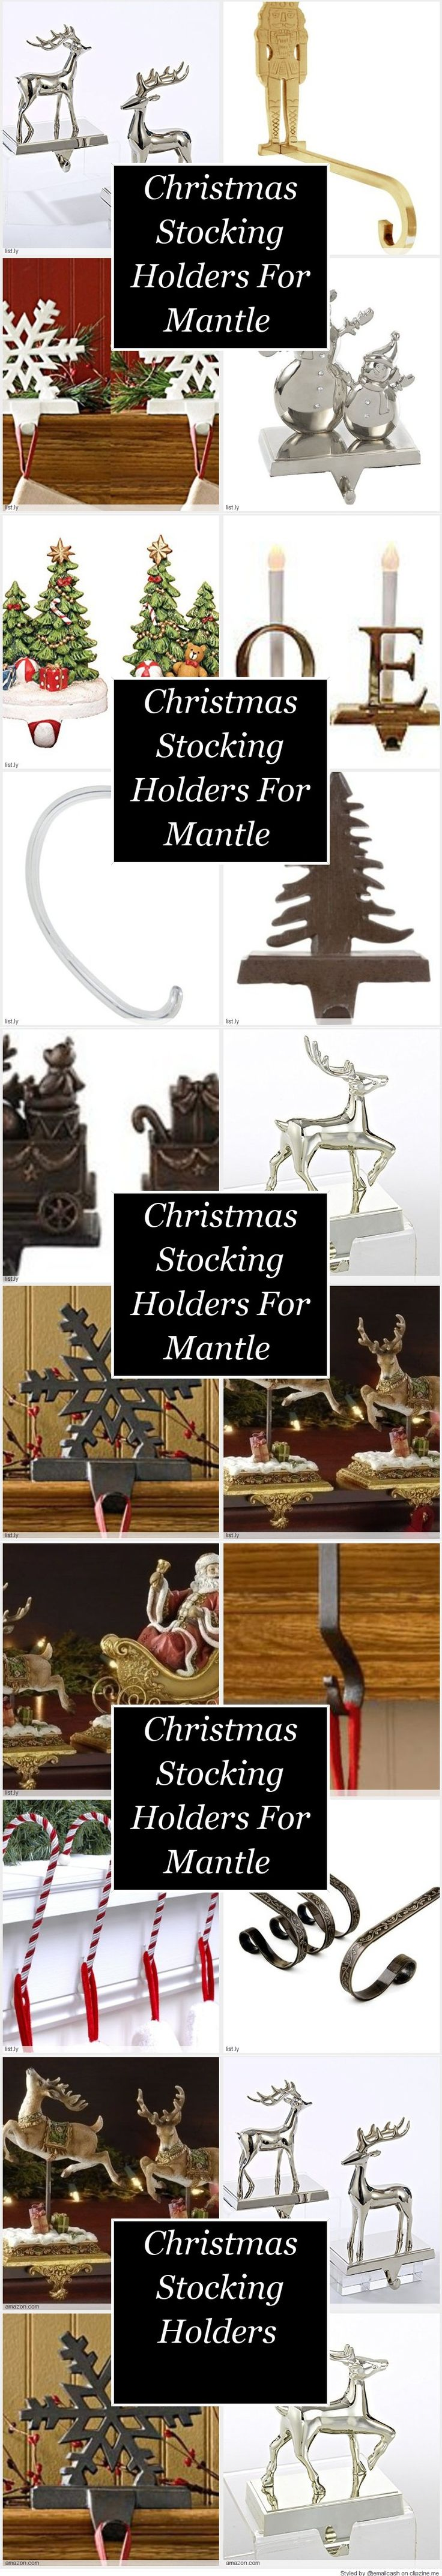 best 25 stocking holders for mantle ideas on pinterest mantle